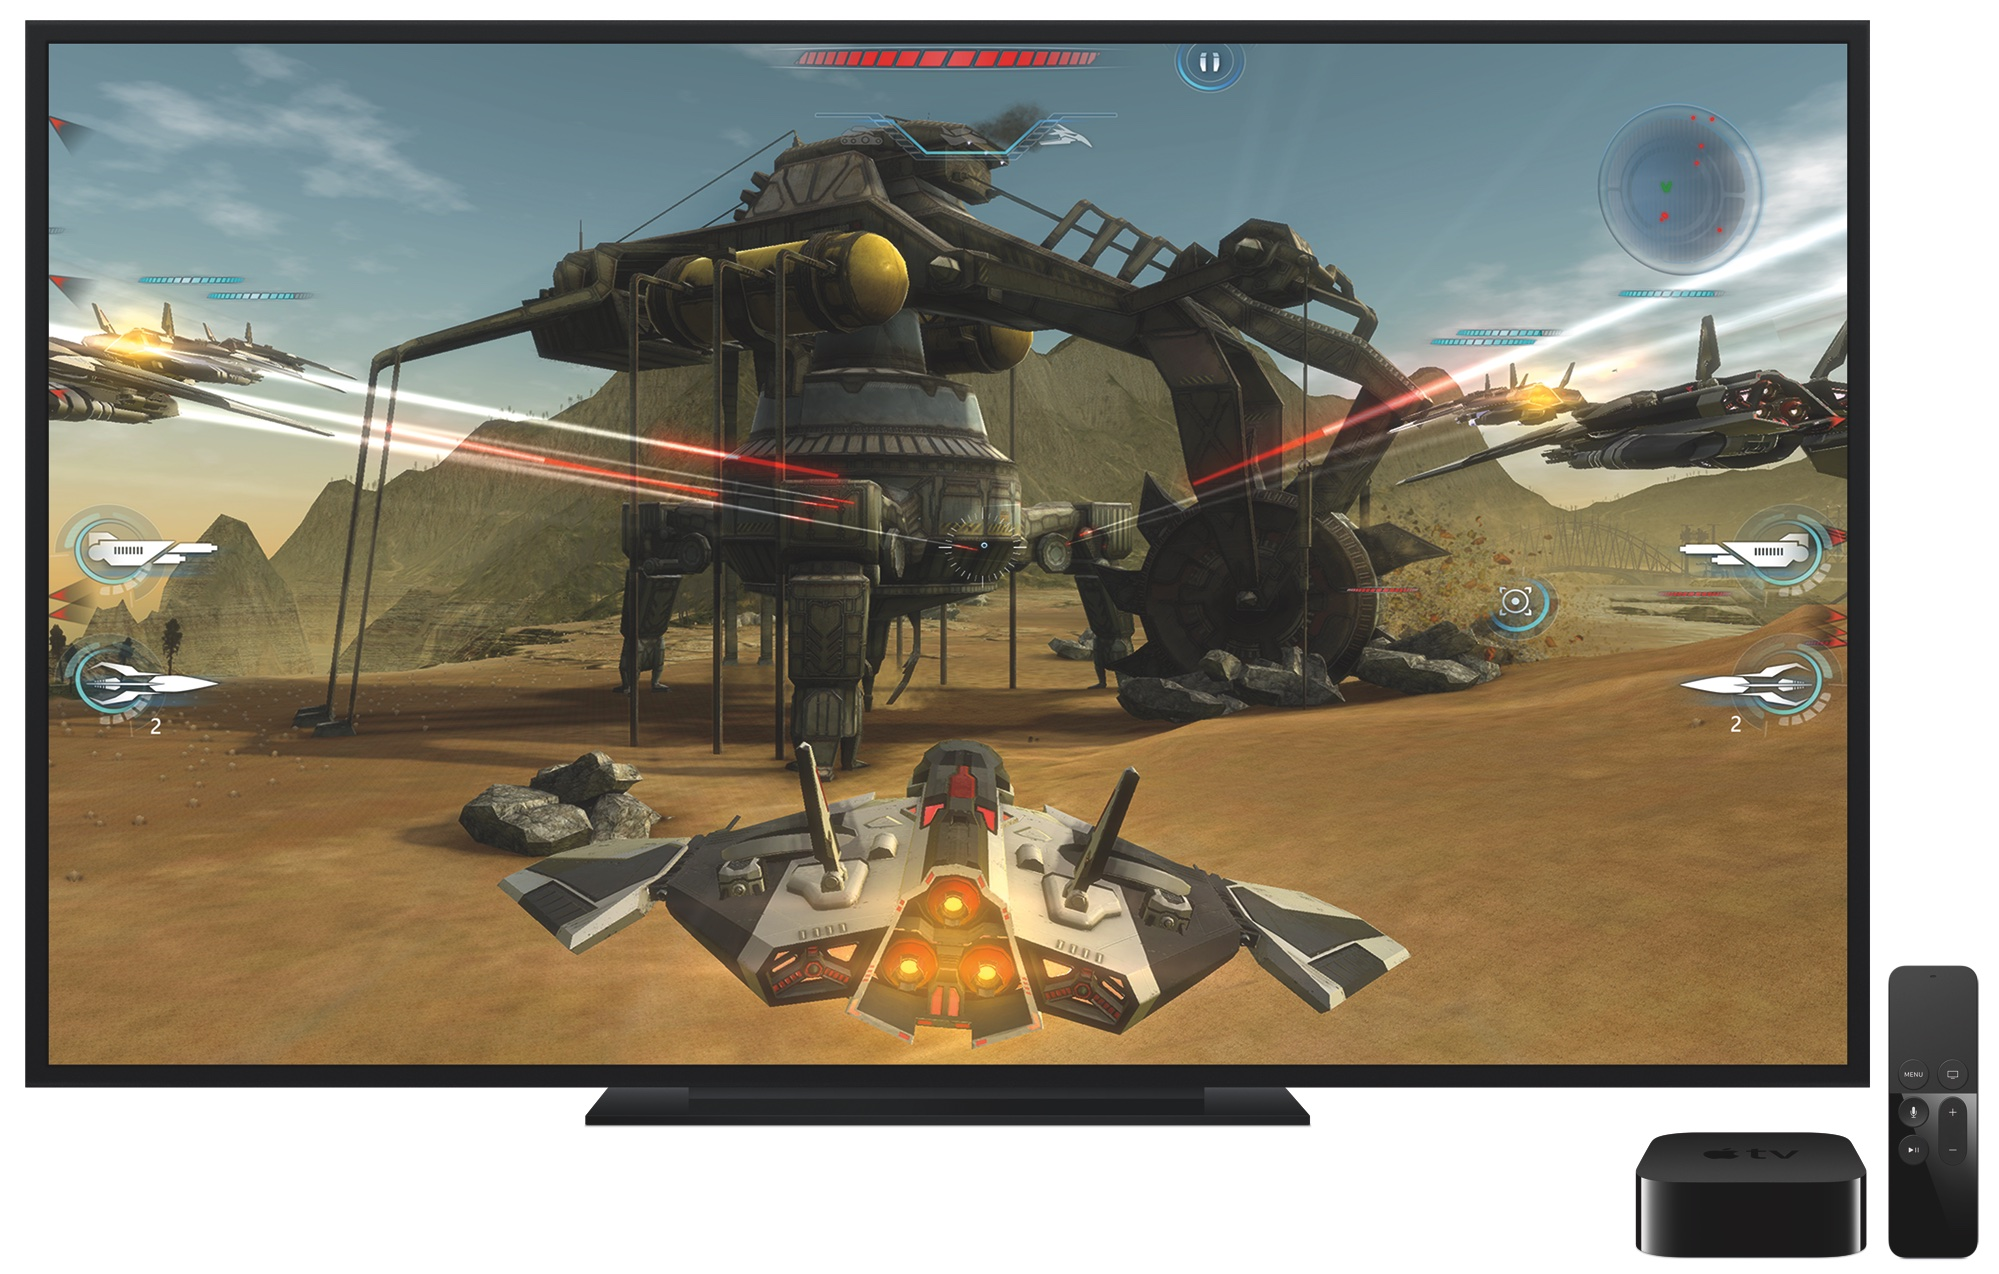 Apple TV Games image 001